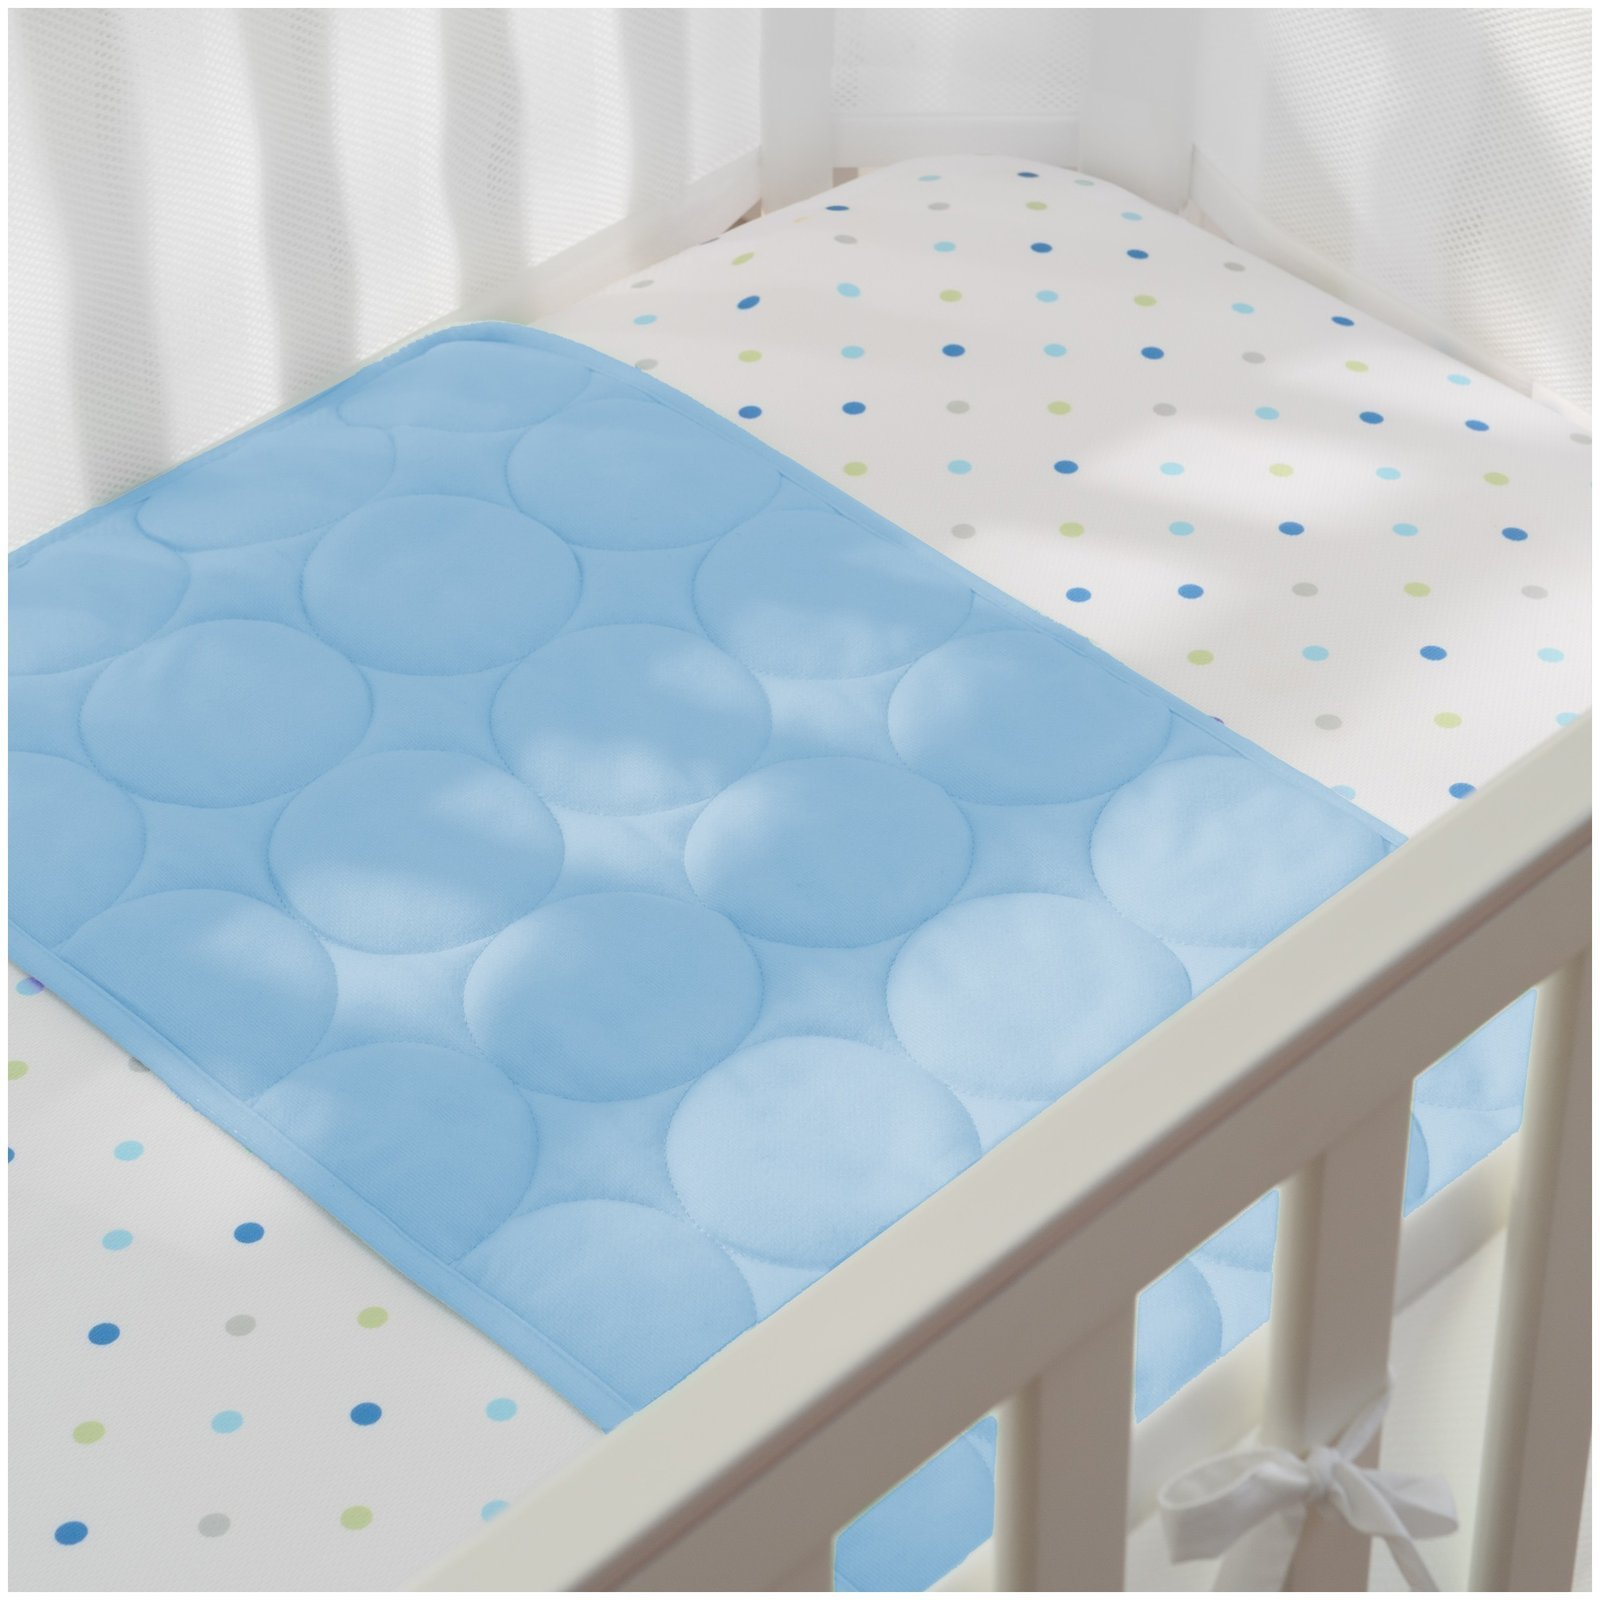 BreathableBaby Wick-Dry Plush Sheet Saver- Blue Mist by BreathableBaby